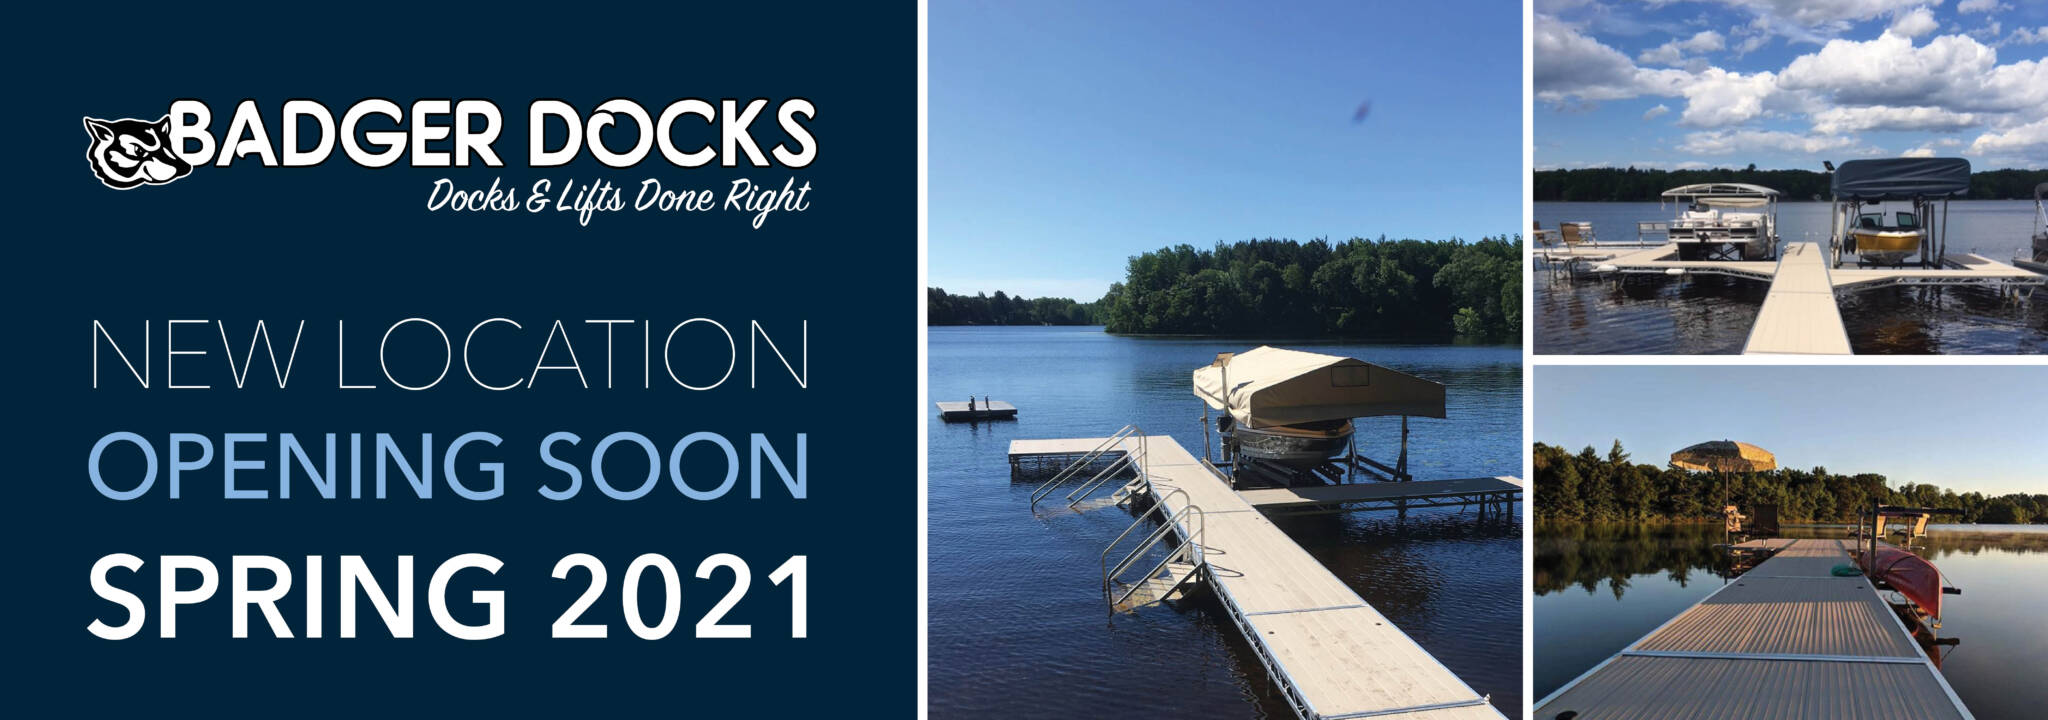 New Badger Dock location opening soon in Spring 2021